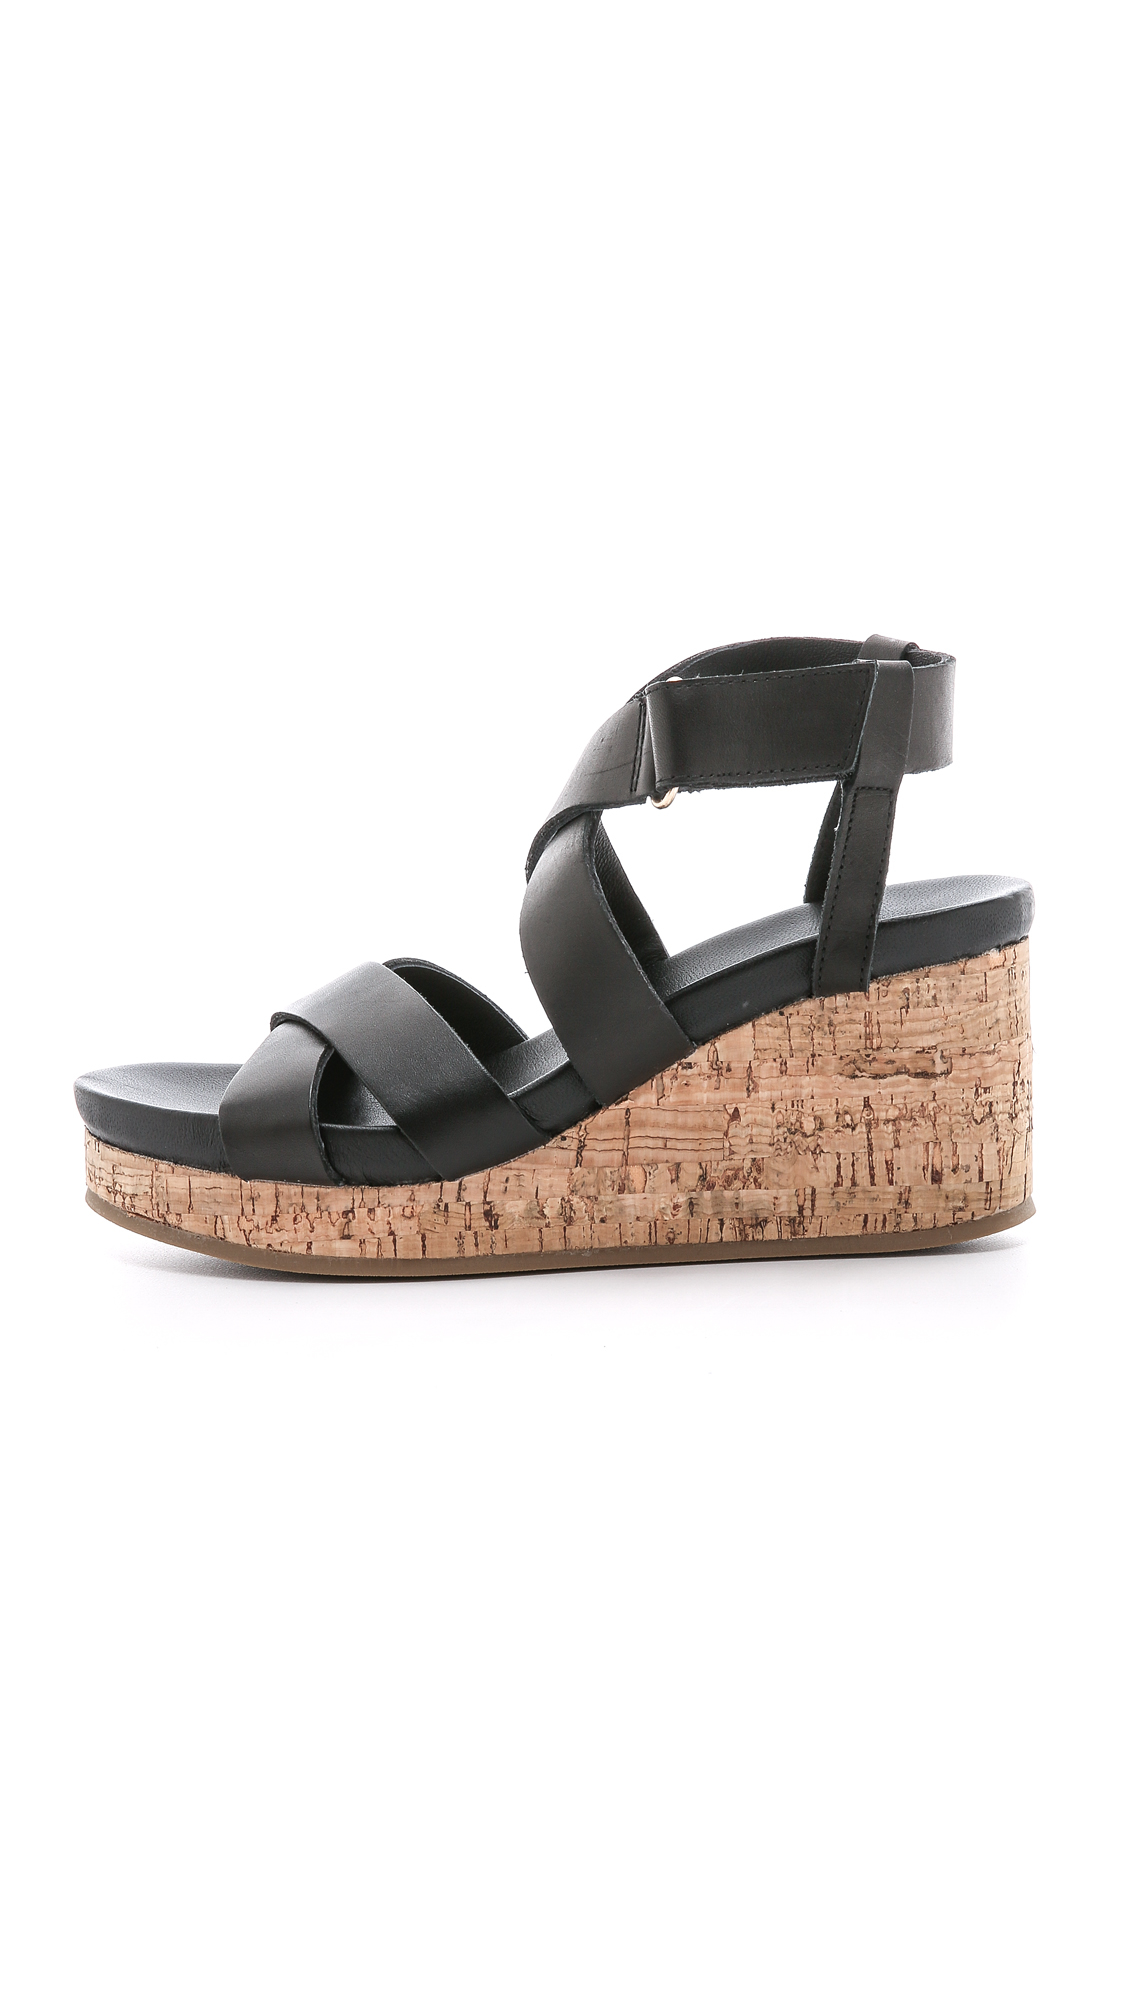 dkny lani cork wedge sandals black in black lyst